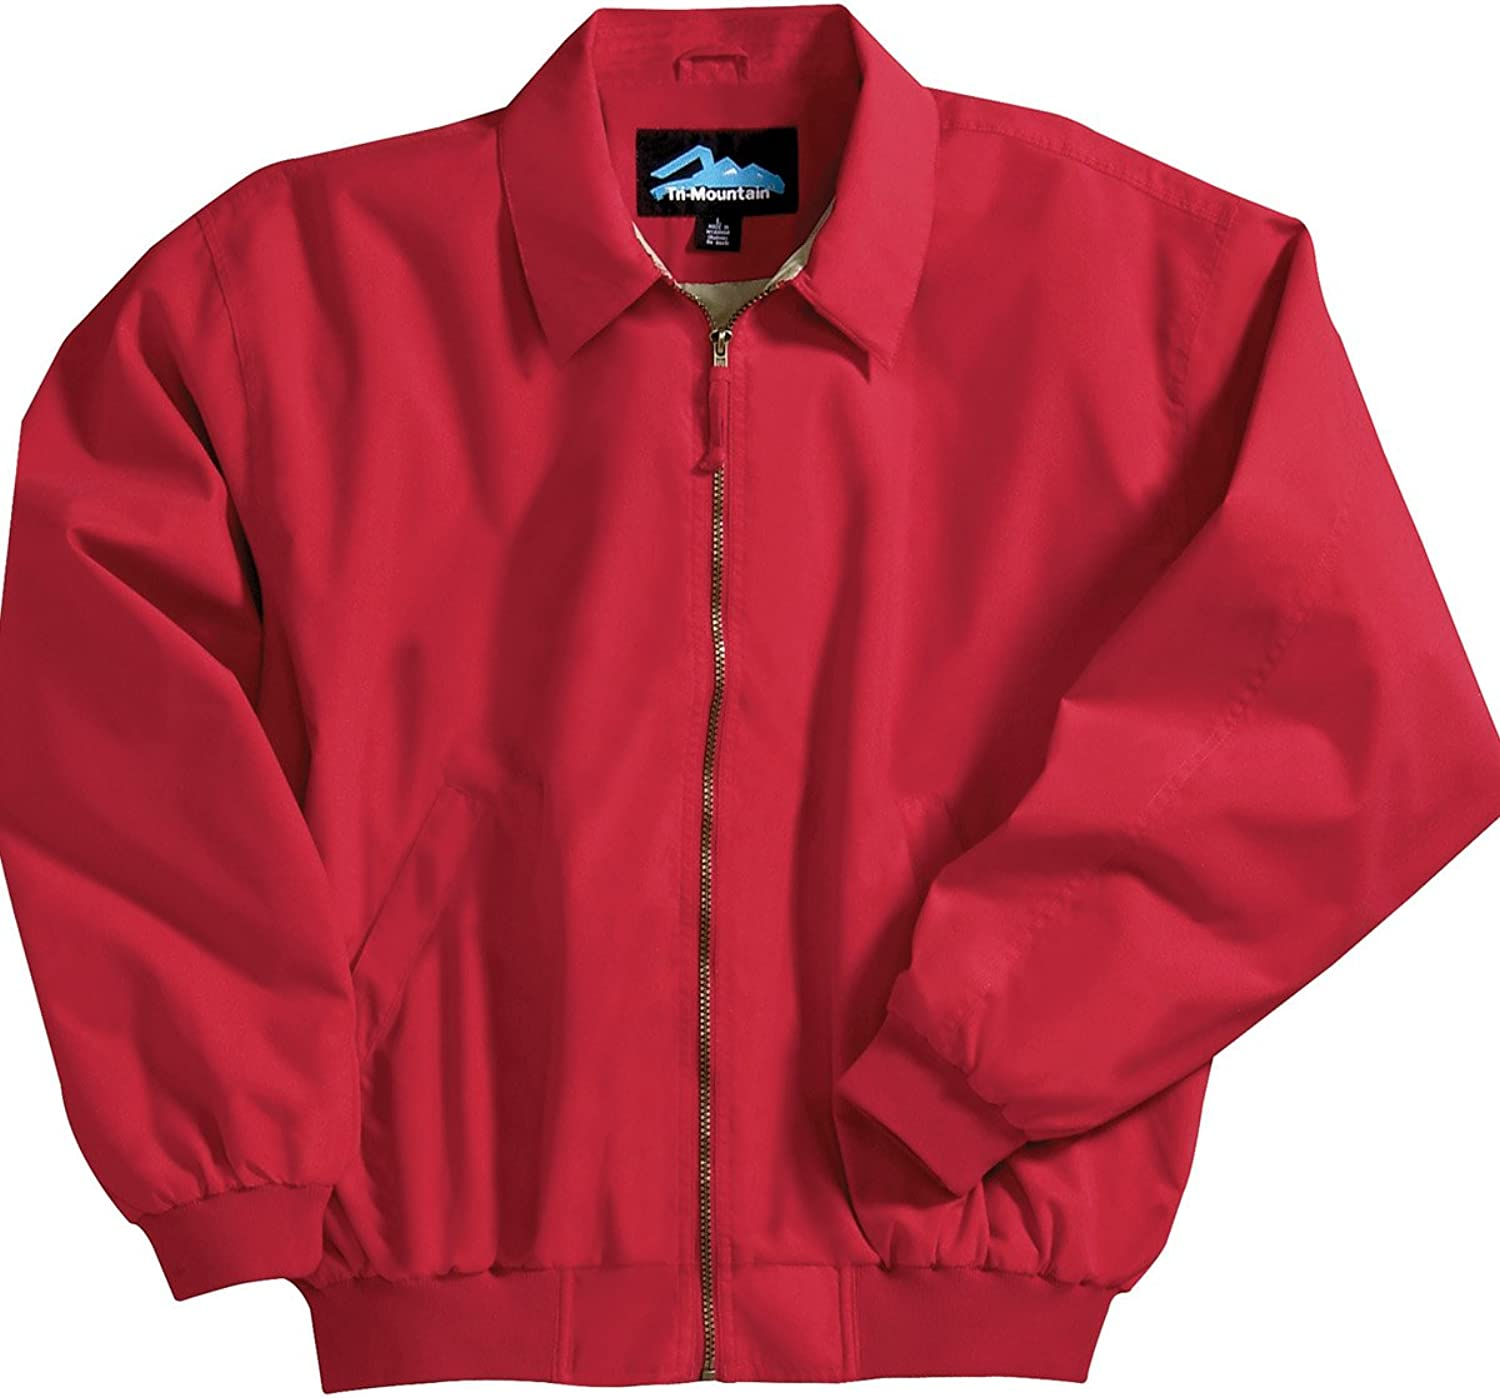 Tri-Mountain 6000 Dallas Mall Popular shop is the lowest price challenge Achiever Jacket